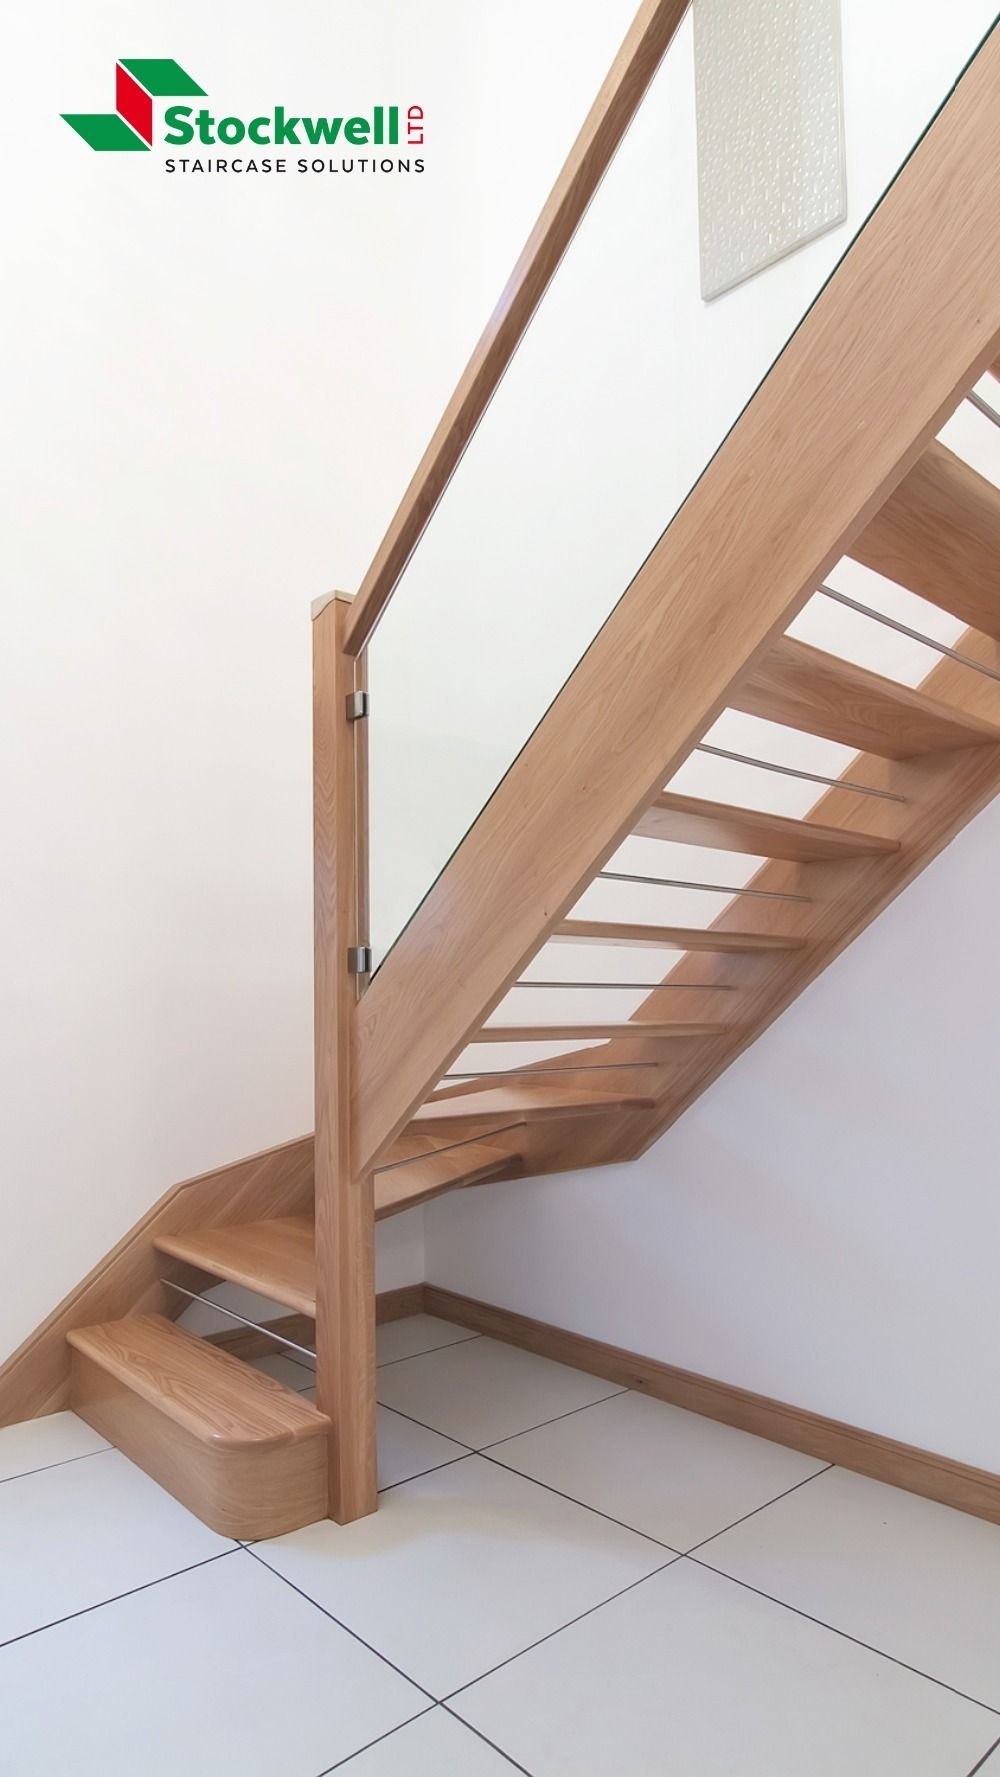 Pin by محمد on House design Timber staircase, Stairs